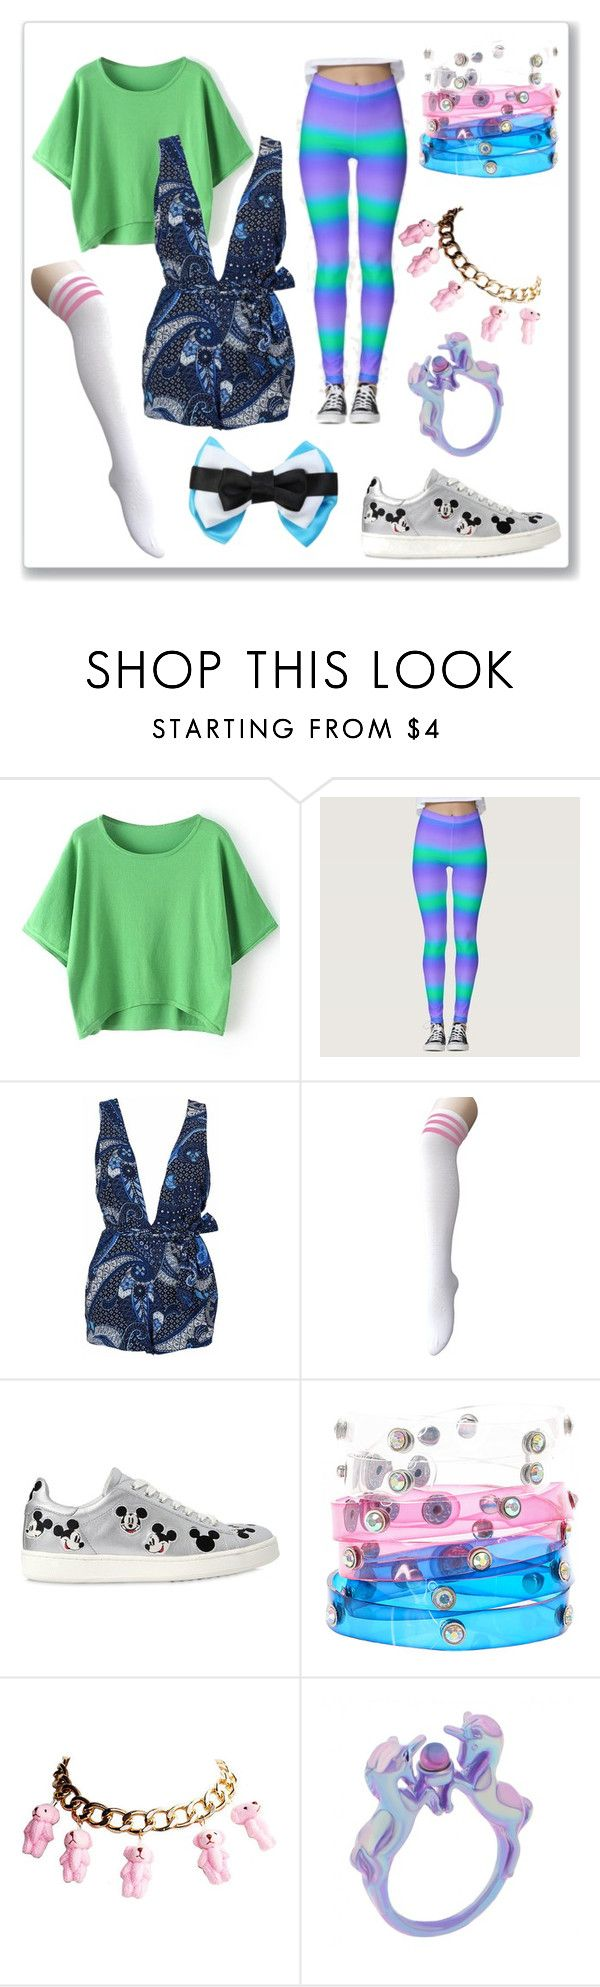 """Wacky tacky day #1~"" by kitty-style101 ❤ liked on Polyvore featuring WithChic, MOA Master of Arts and Disney"